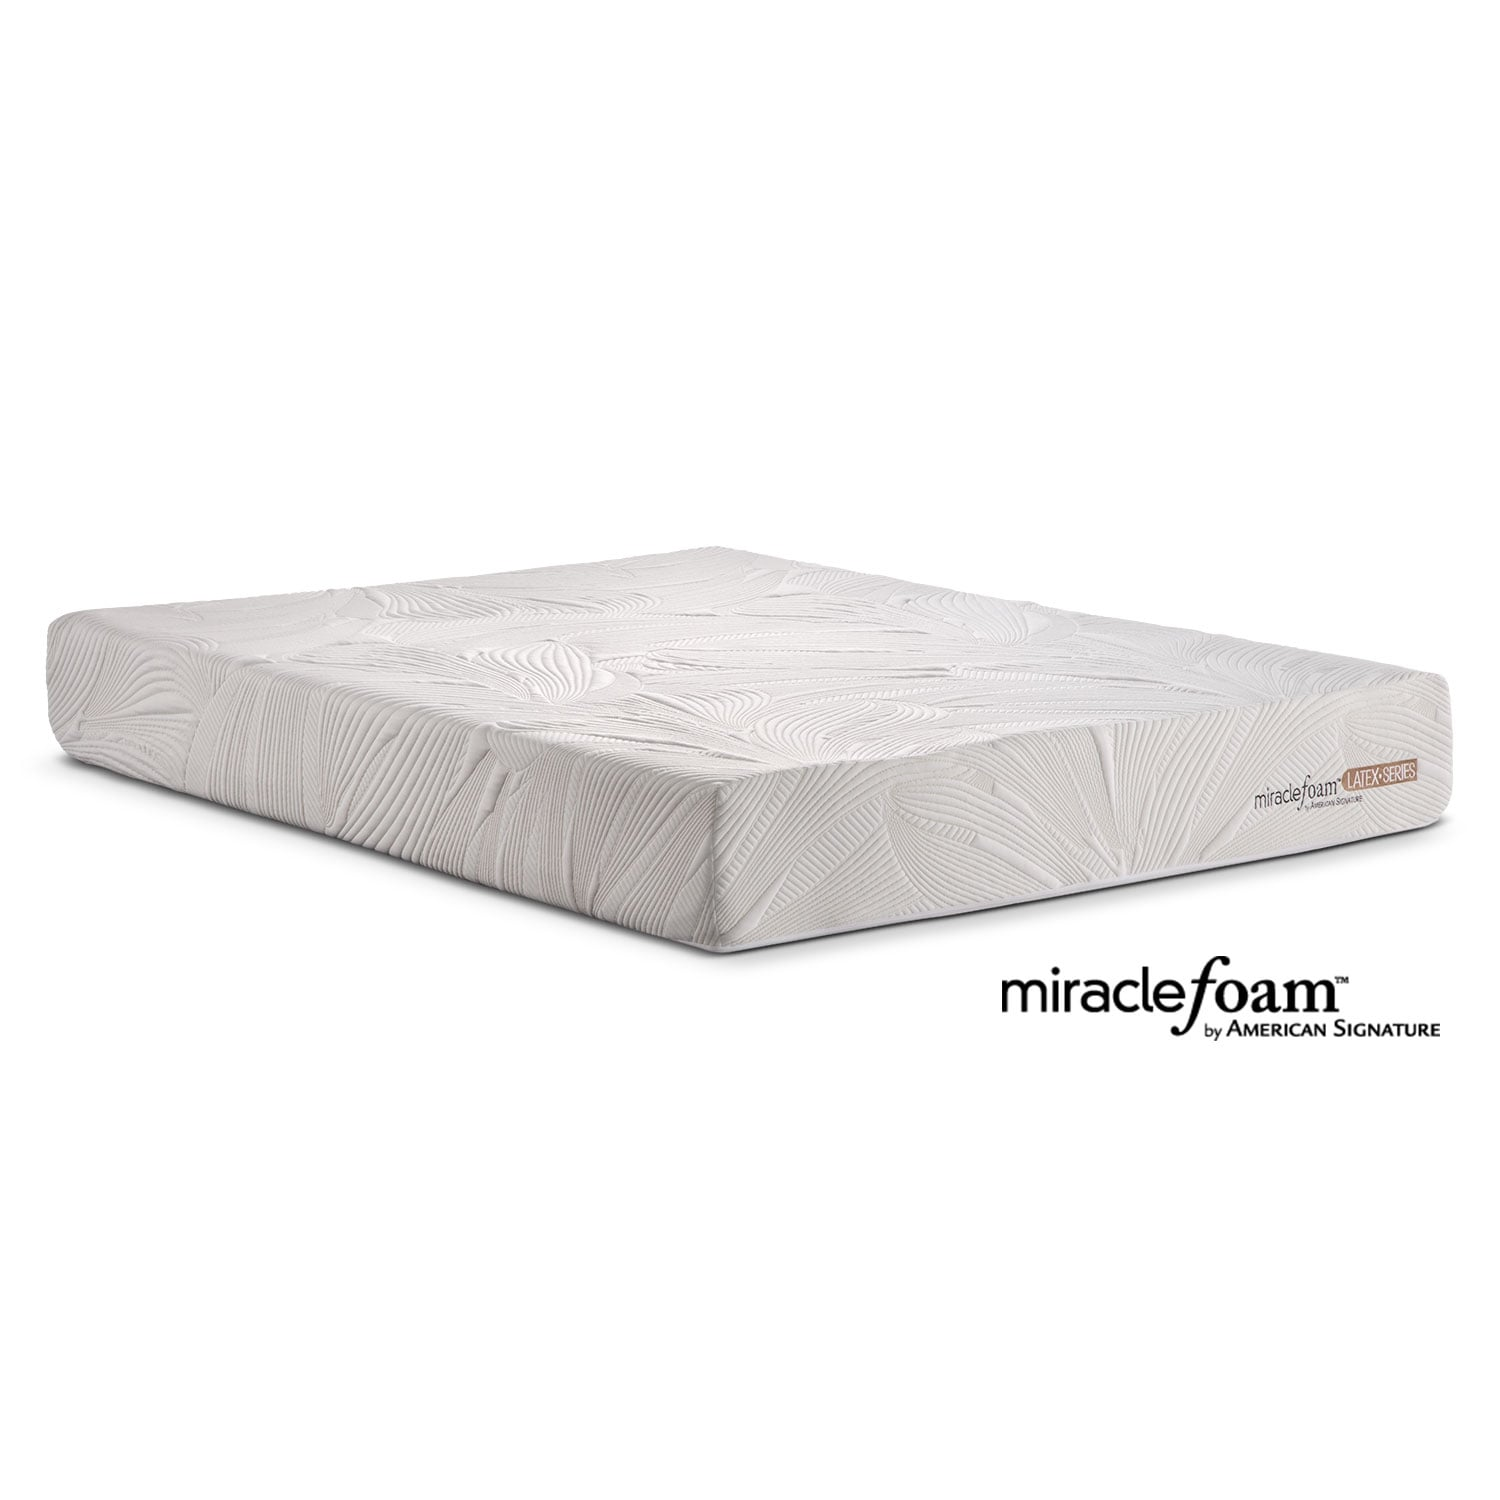 Mattresses and Bedding - Tranquil Queen Mattress